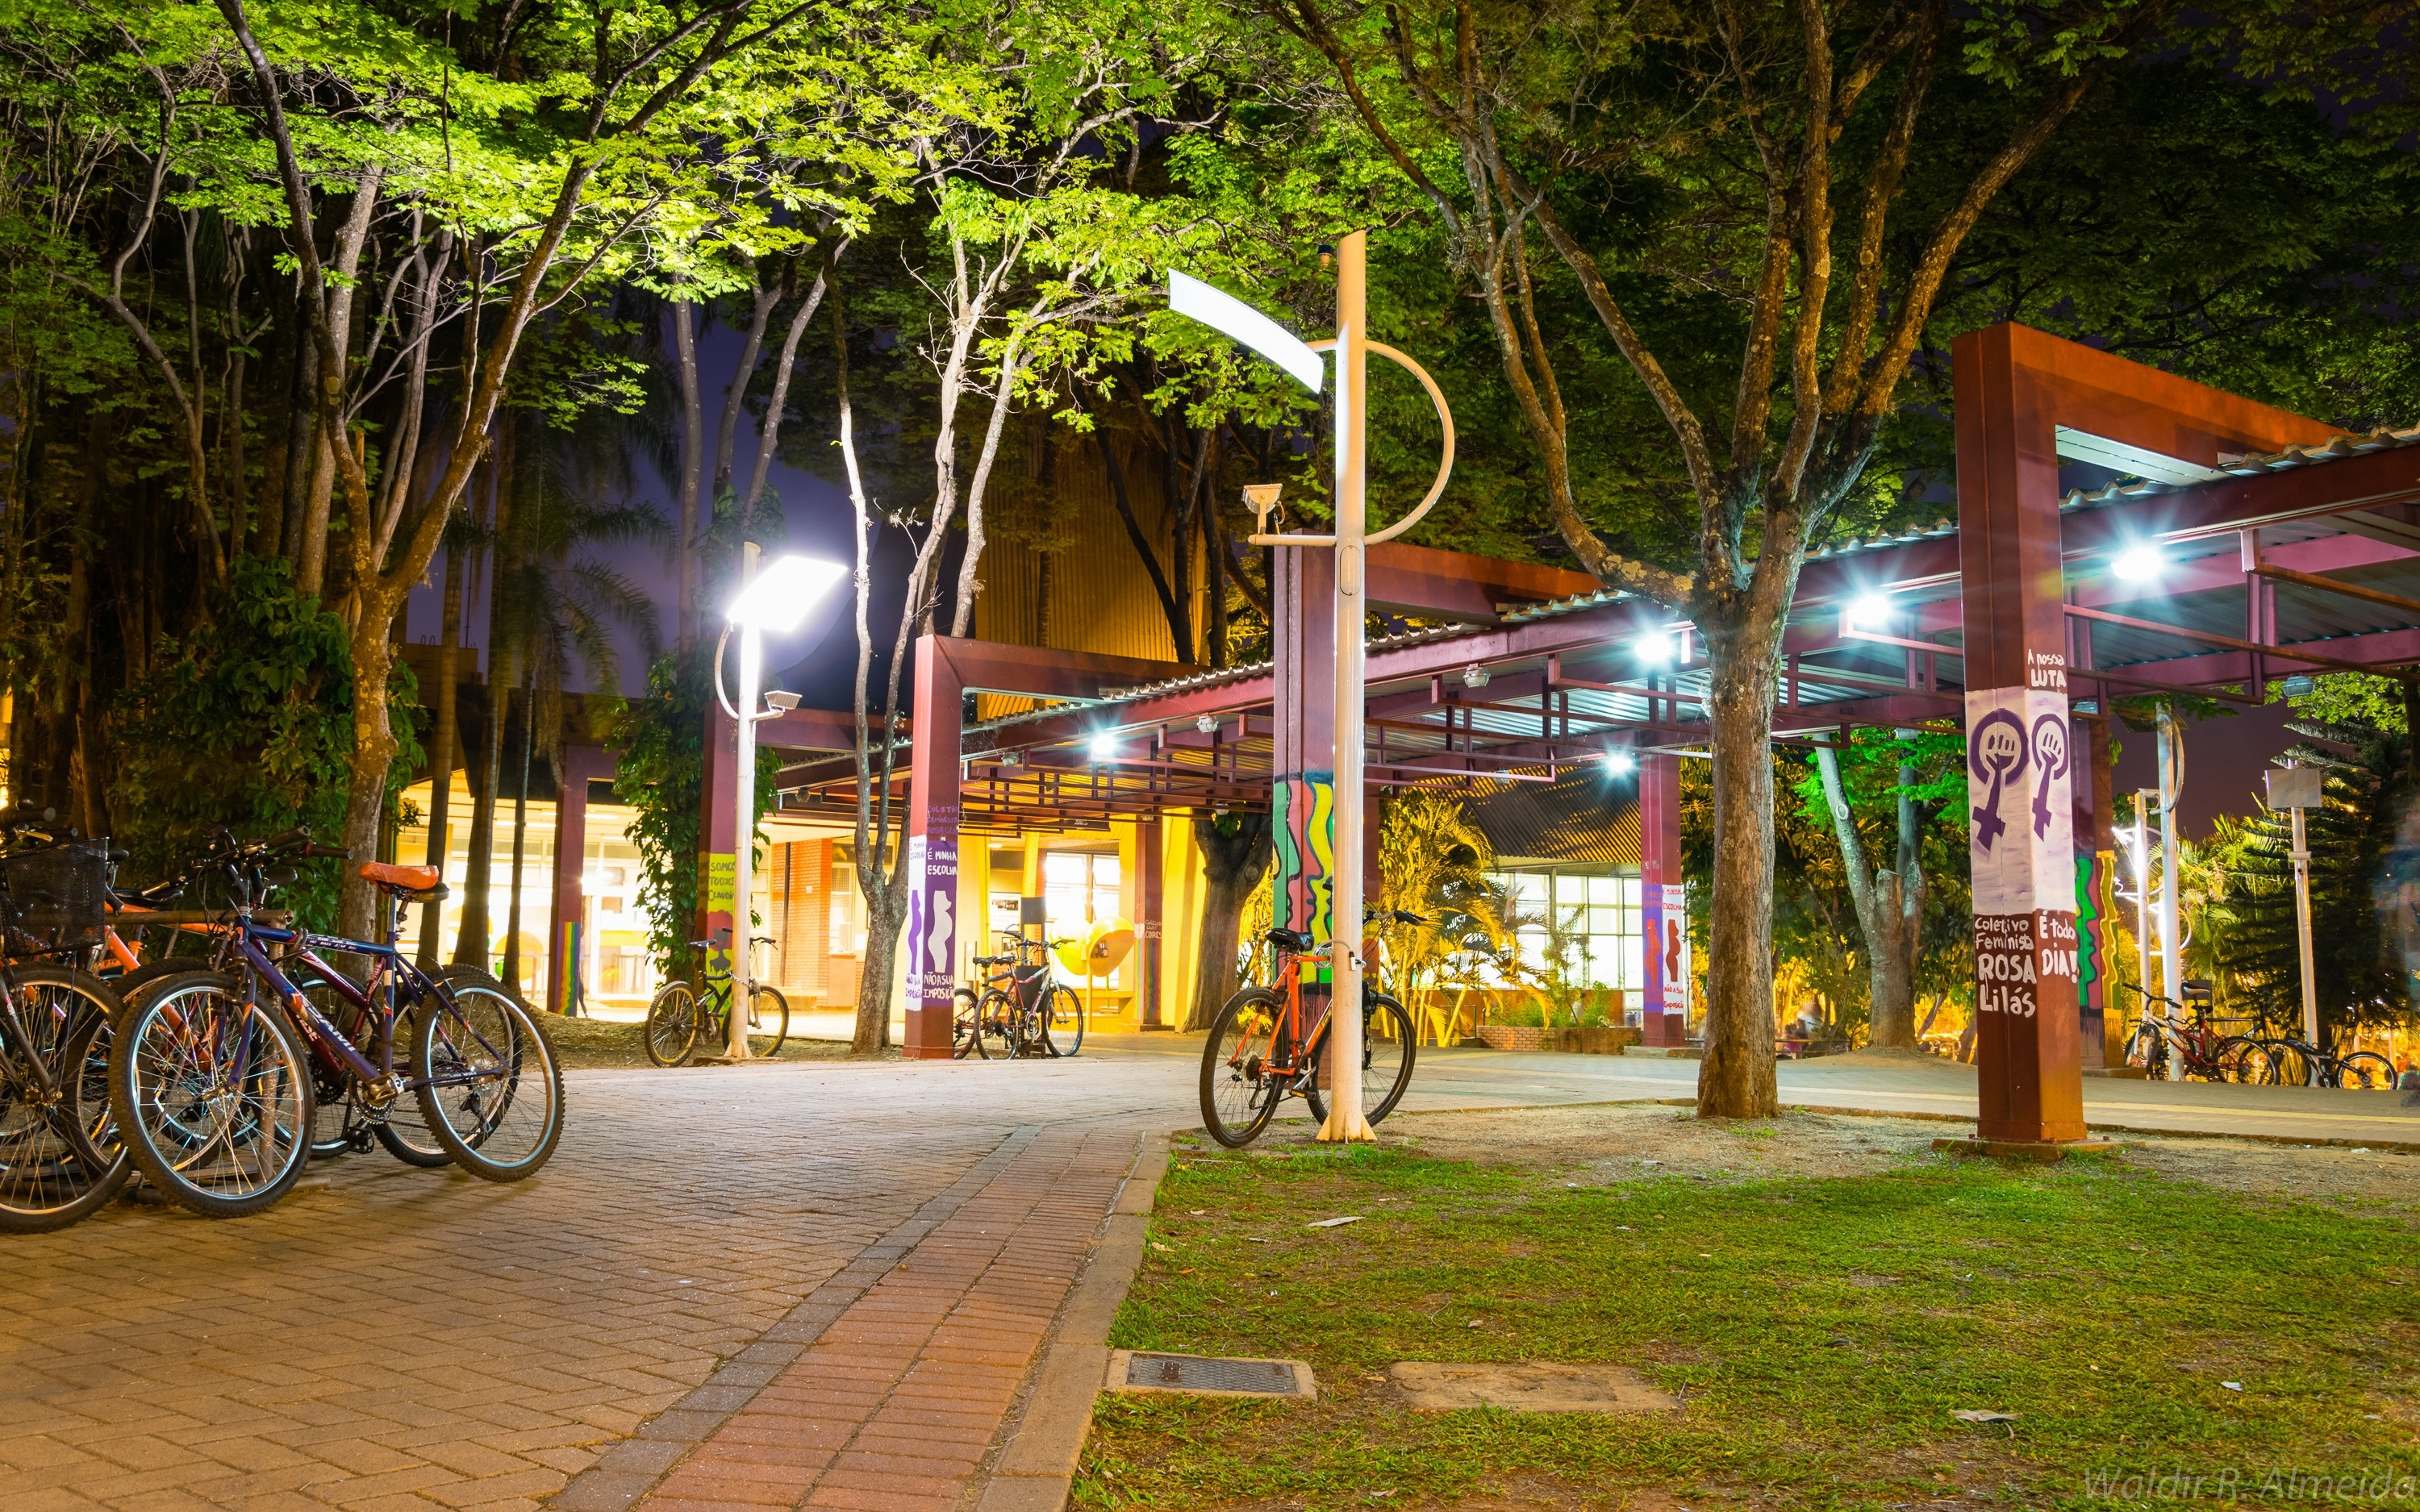 Entrance to the Restaurant UNICAMP 2015